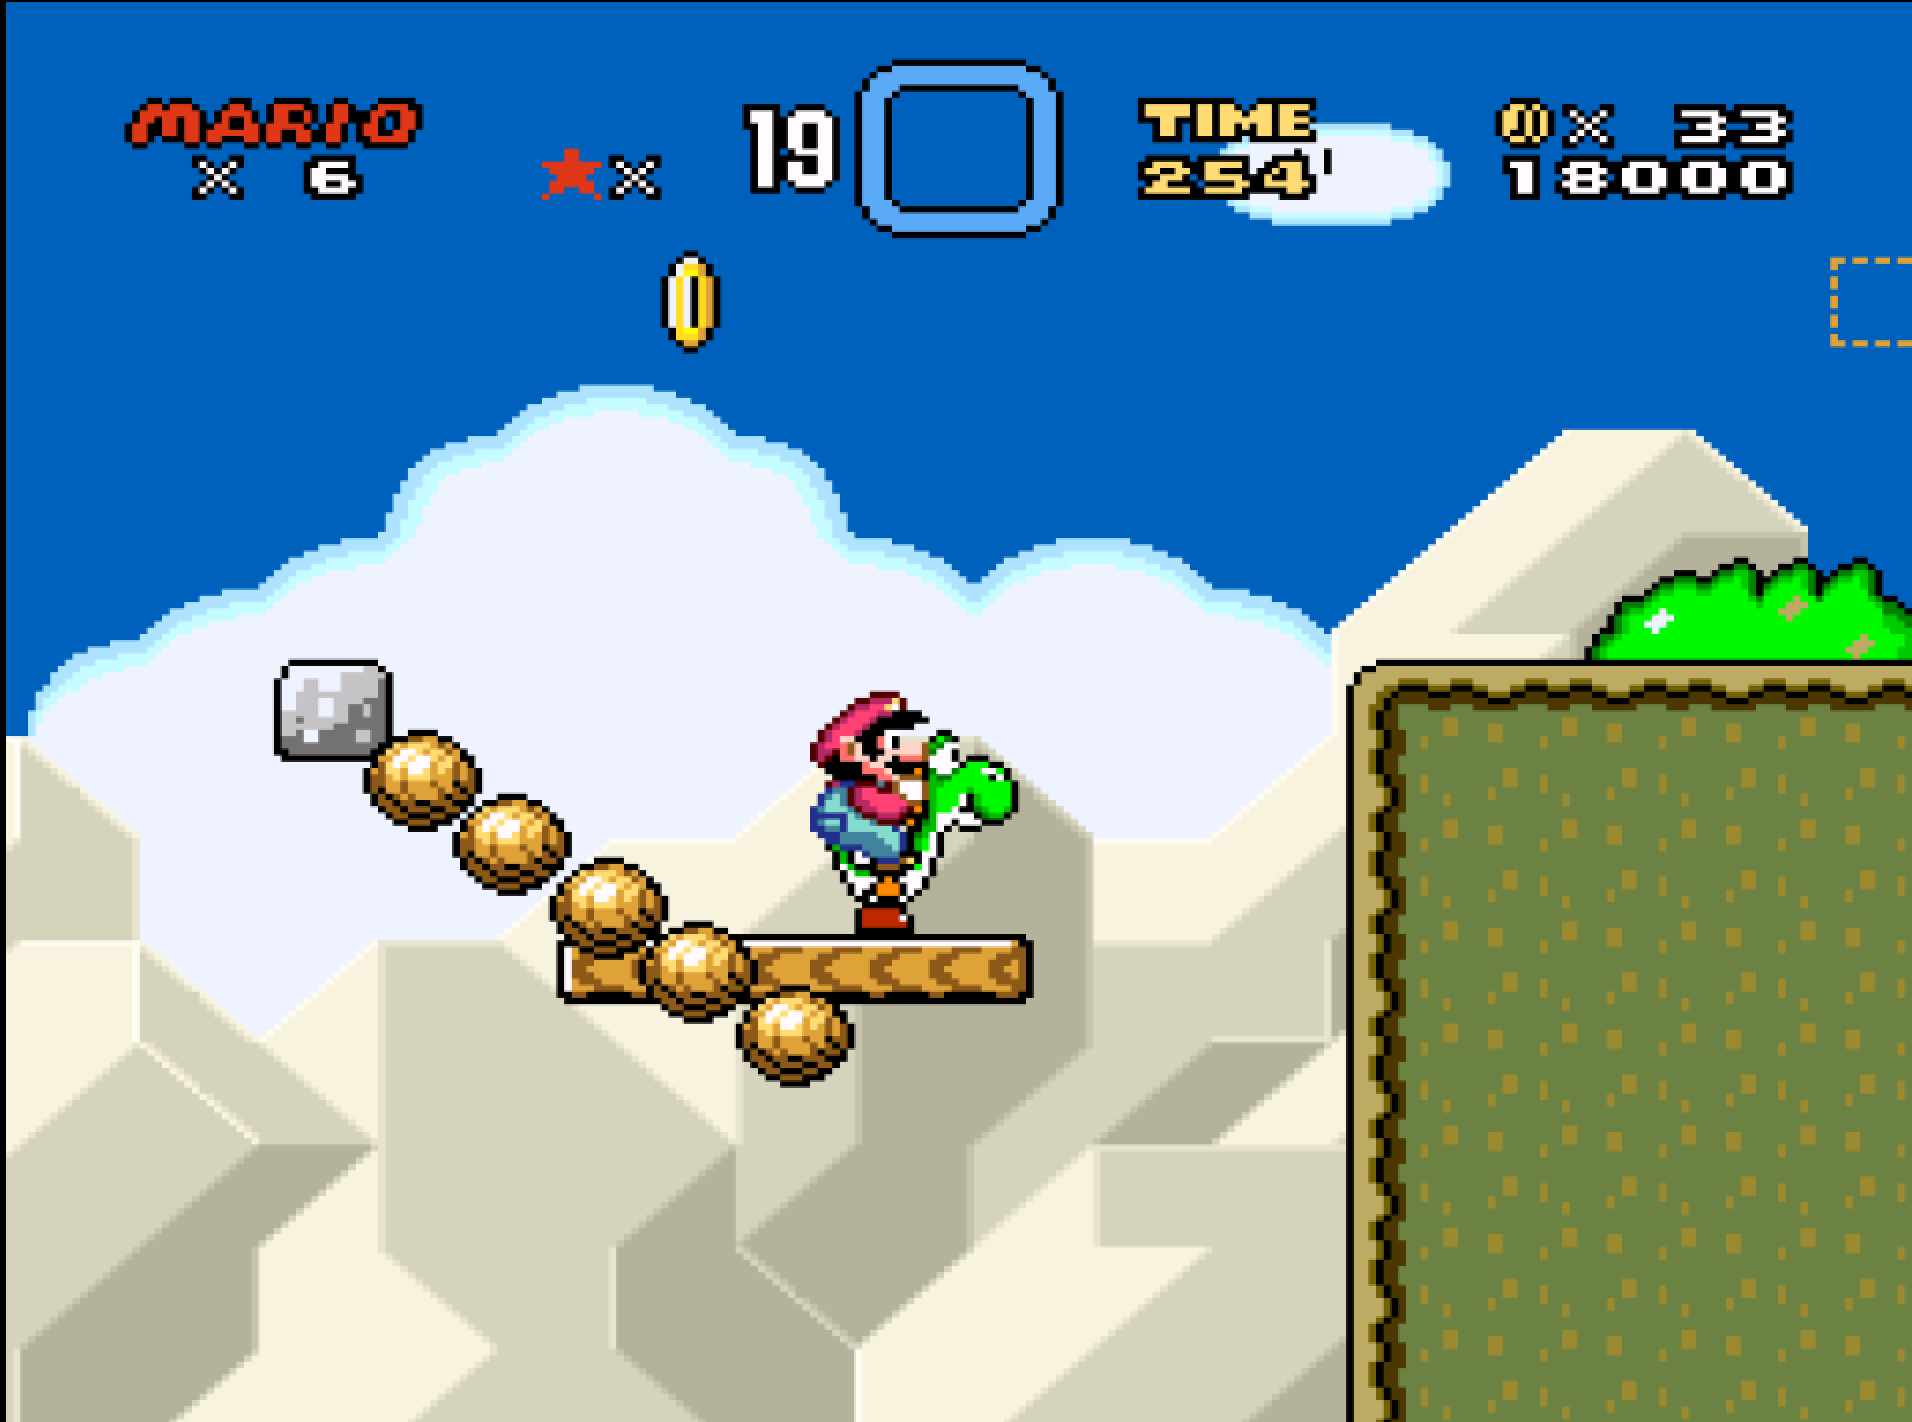 Super Mario World on SNES